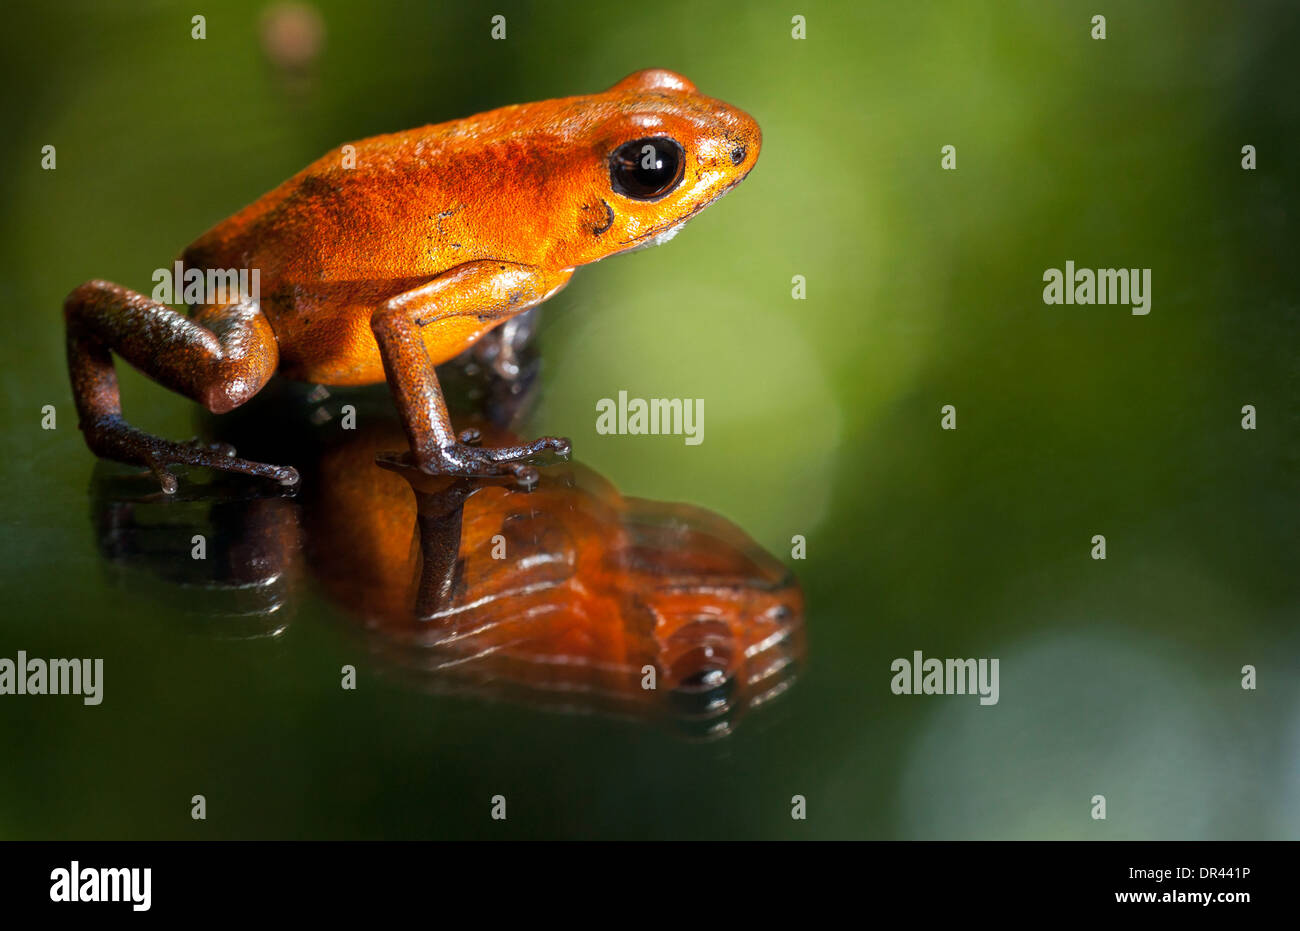 Close-up of Strawberry Poison-Dart Frog - La Laguna del Lagarto Lodge - Boca Tapada, San Carlos, Costa Rica - Stock Image